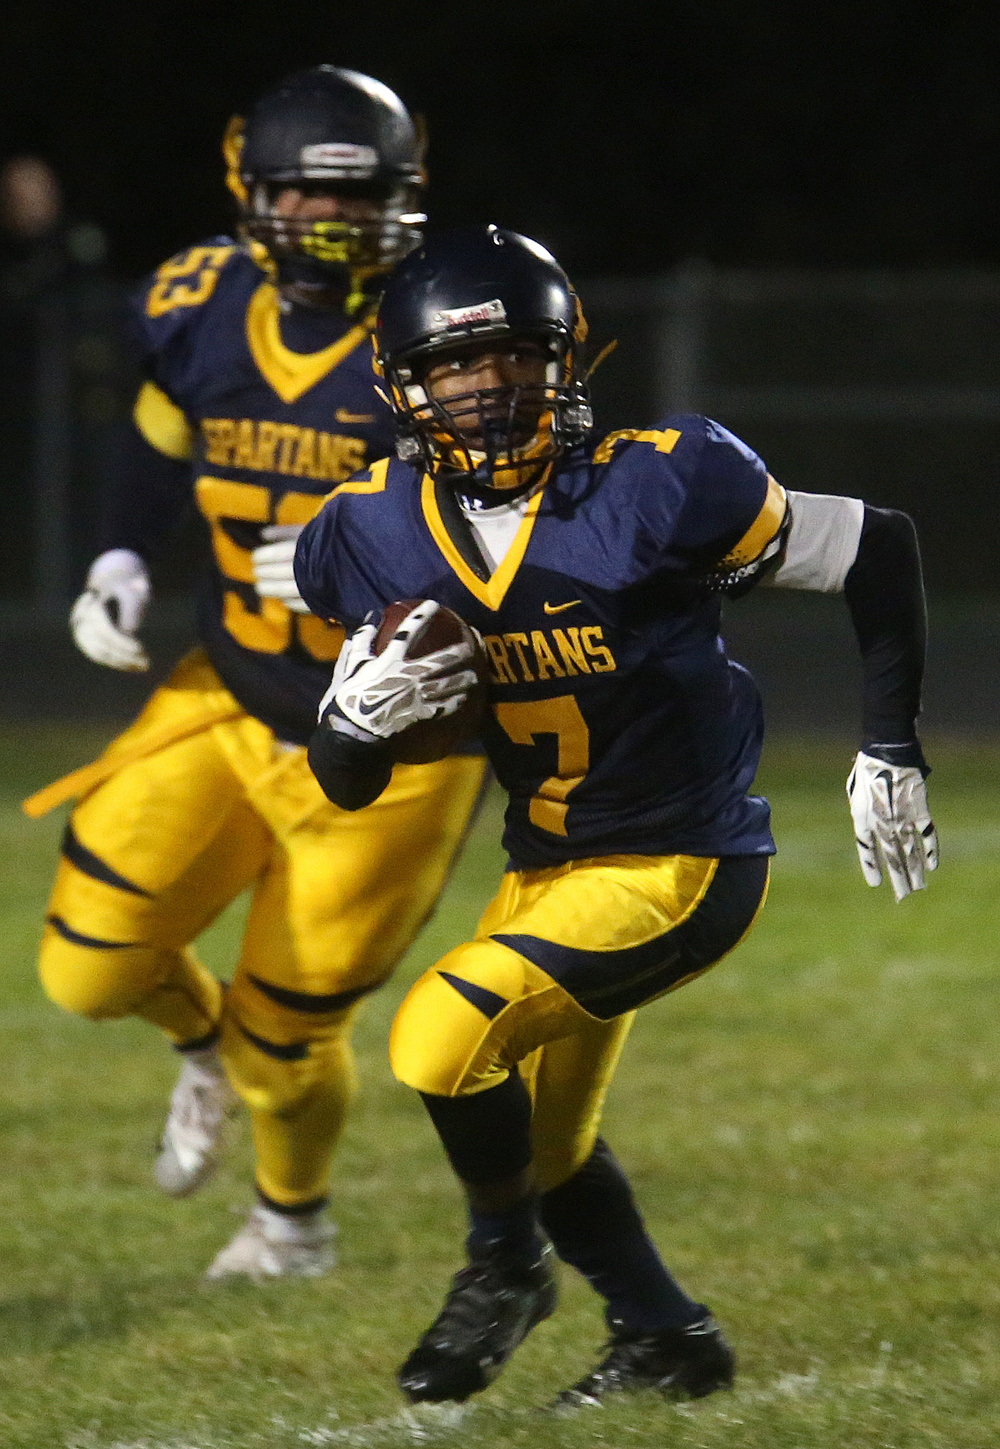 Spartans ball carrier Simeon Helem runs for yardage. David Spencer/The State Journal-Register